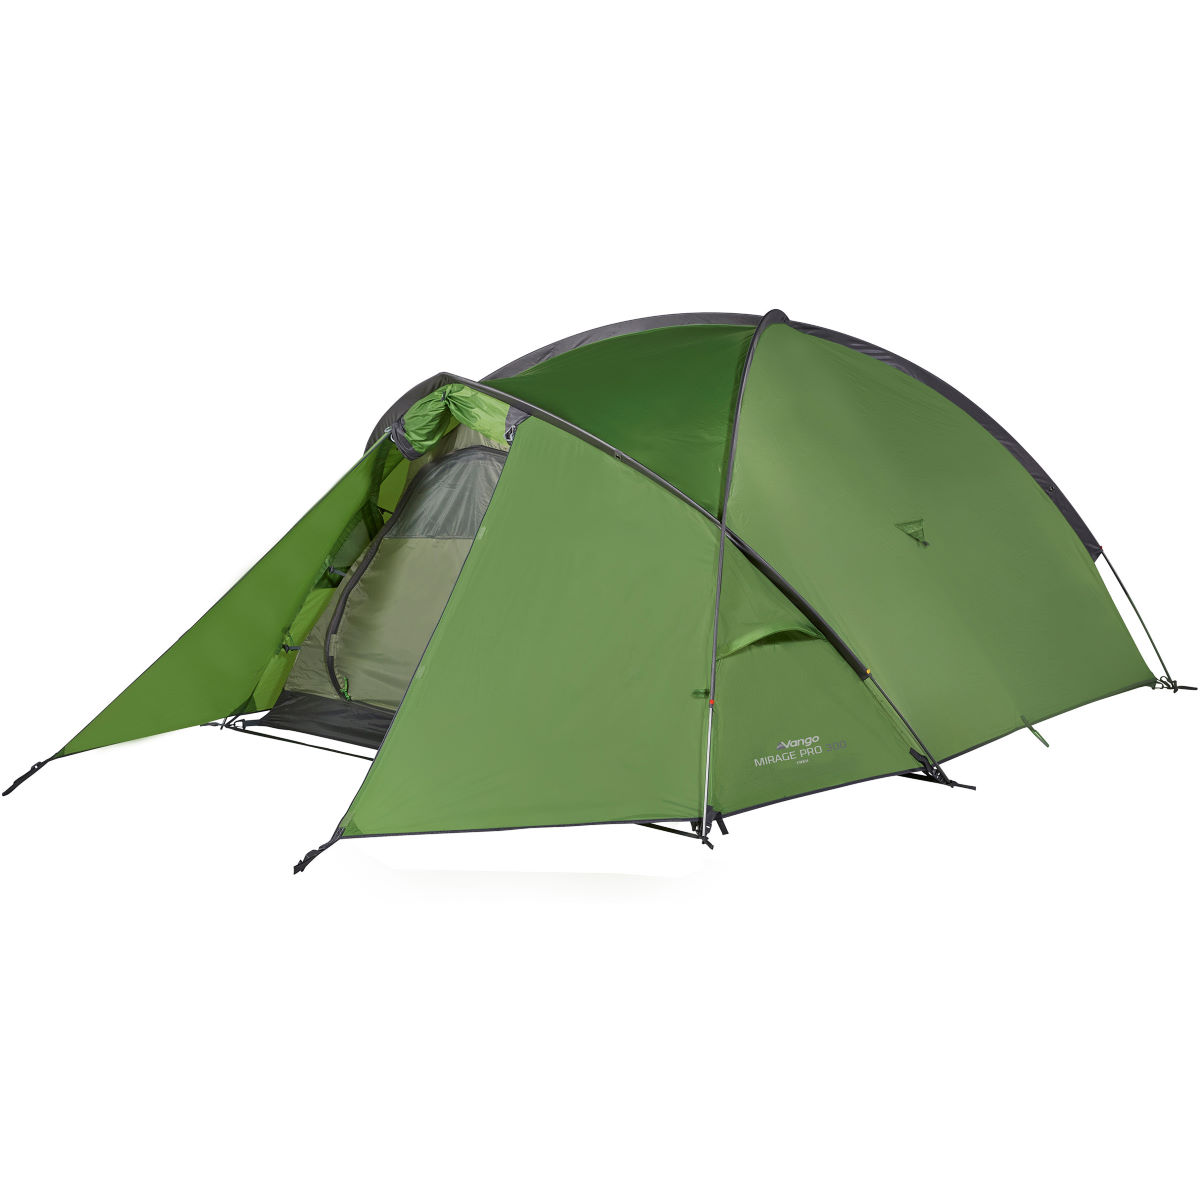 Vango Vango Mirage Pro 300 Three Person Tent   Tents